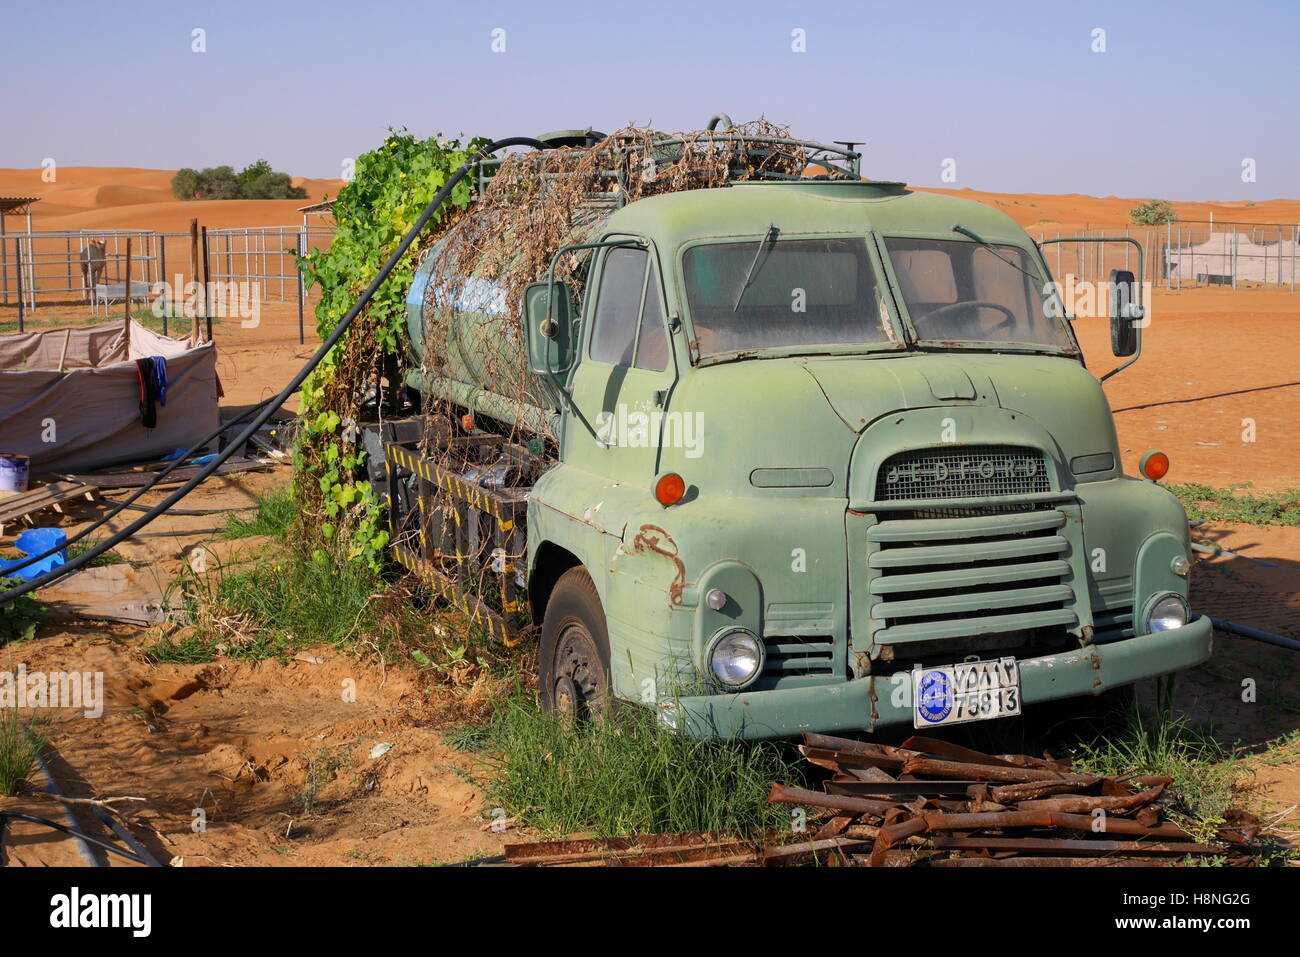 Nineteen fifties Bedford tanker, being used as a static water tank on a camel farm, Abu Dhabi Emirate, UAE - Stock Image